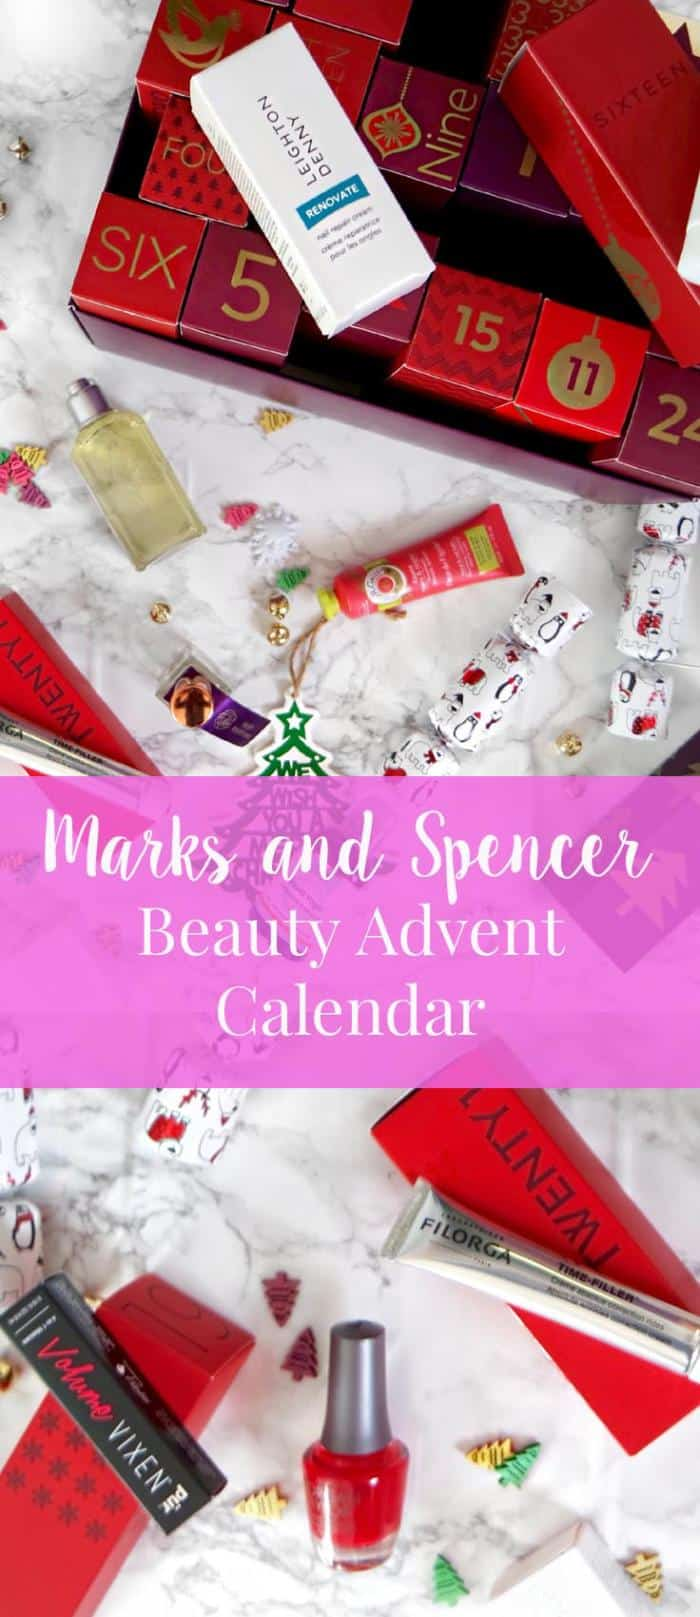 Marks and Spencer Beauty Advent Calender. Spend £25 in store and get this for just £25. Filled to the brim with products worth over £200.